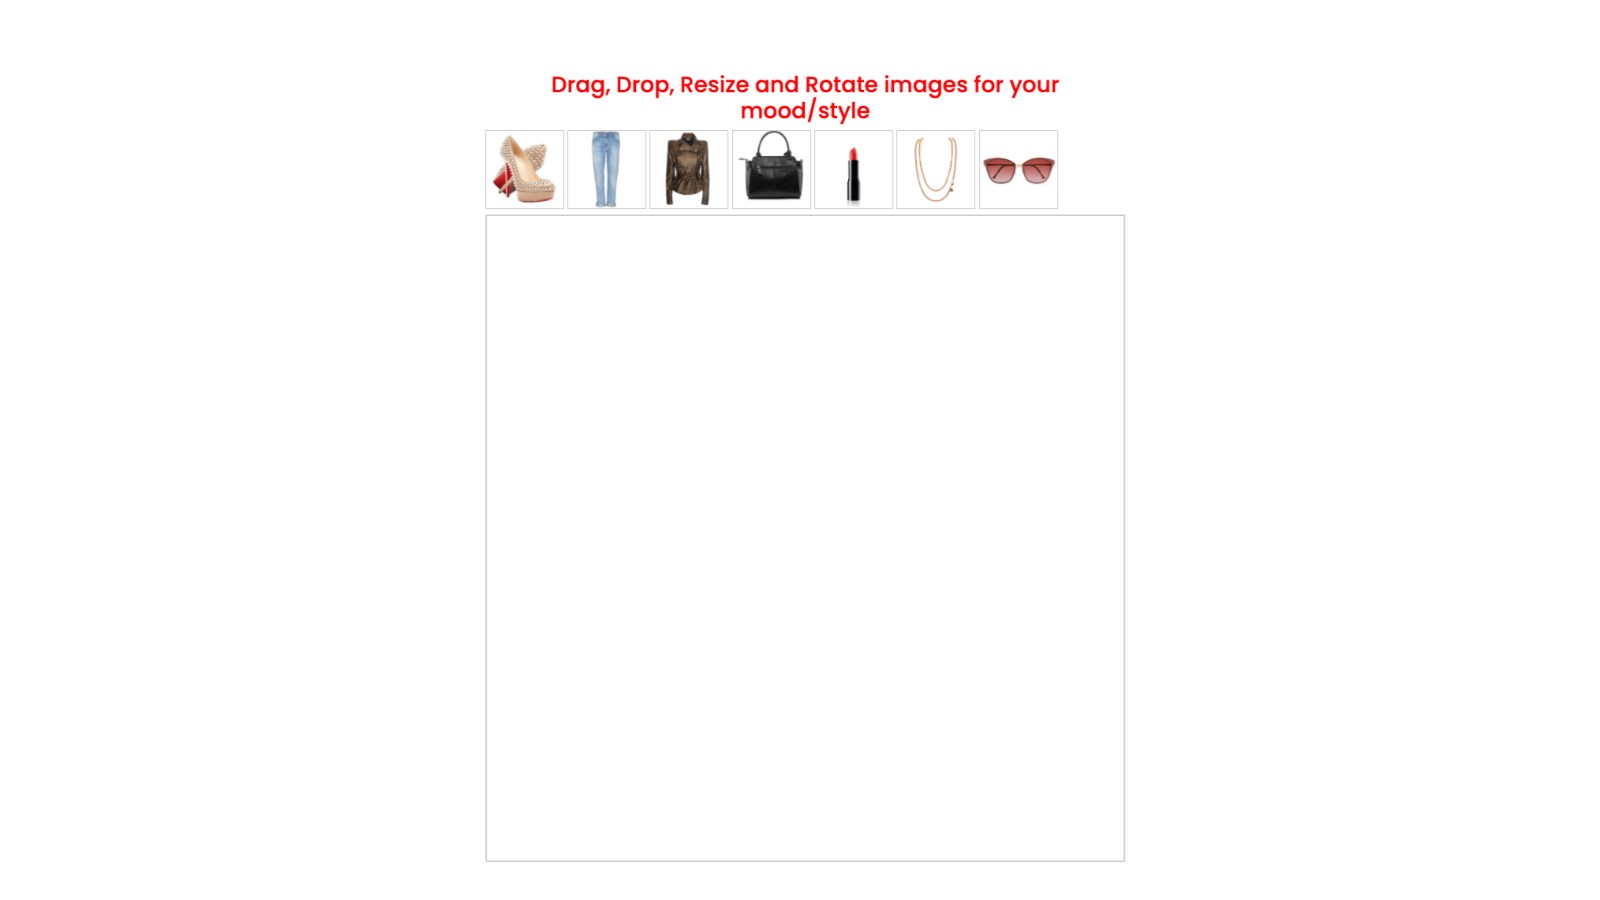 Drag, Drop, Resize and Rotate images for mood board page.